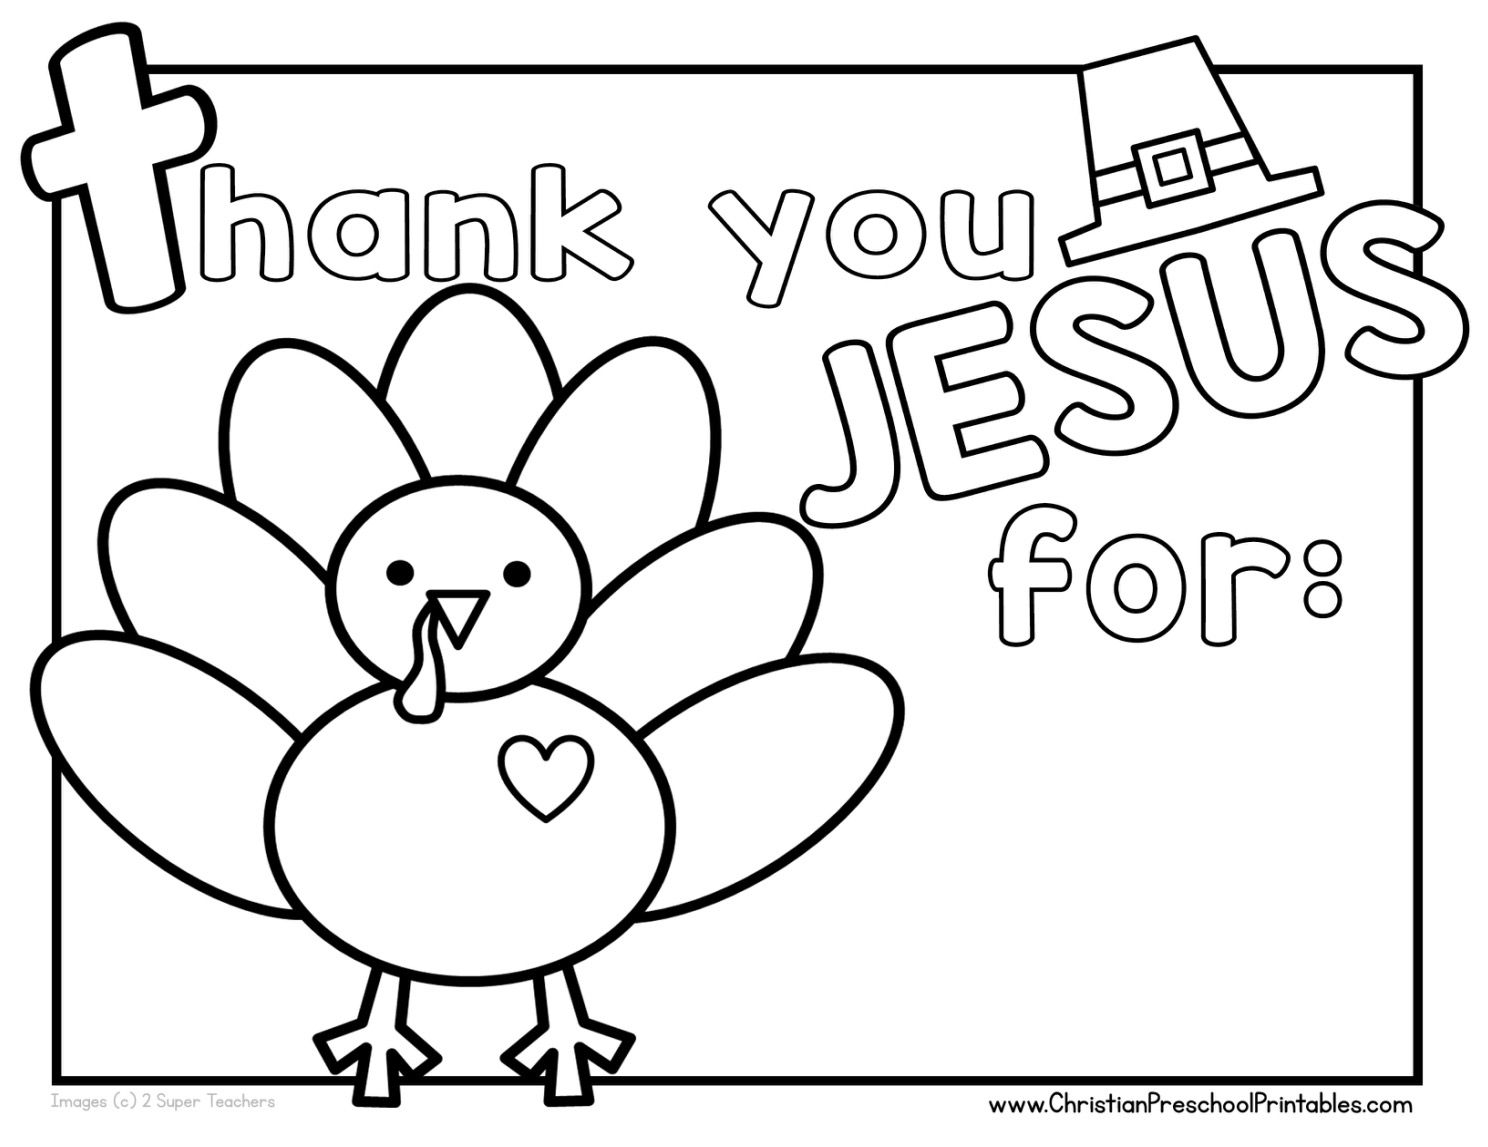 Free Sunday School Lessons Coloring Pages